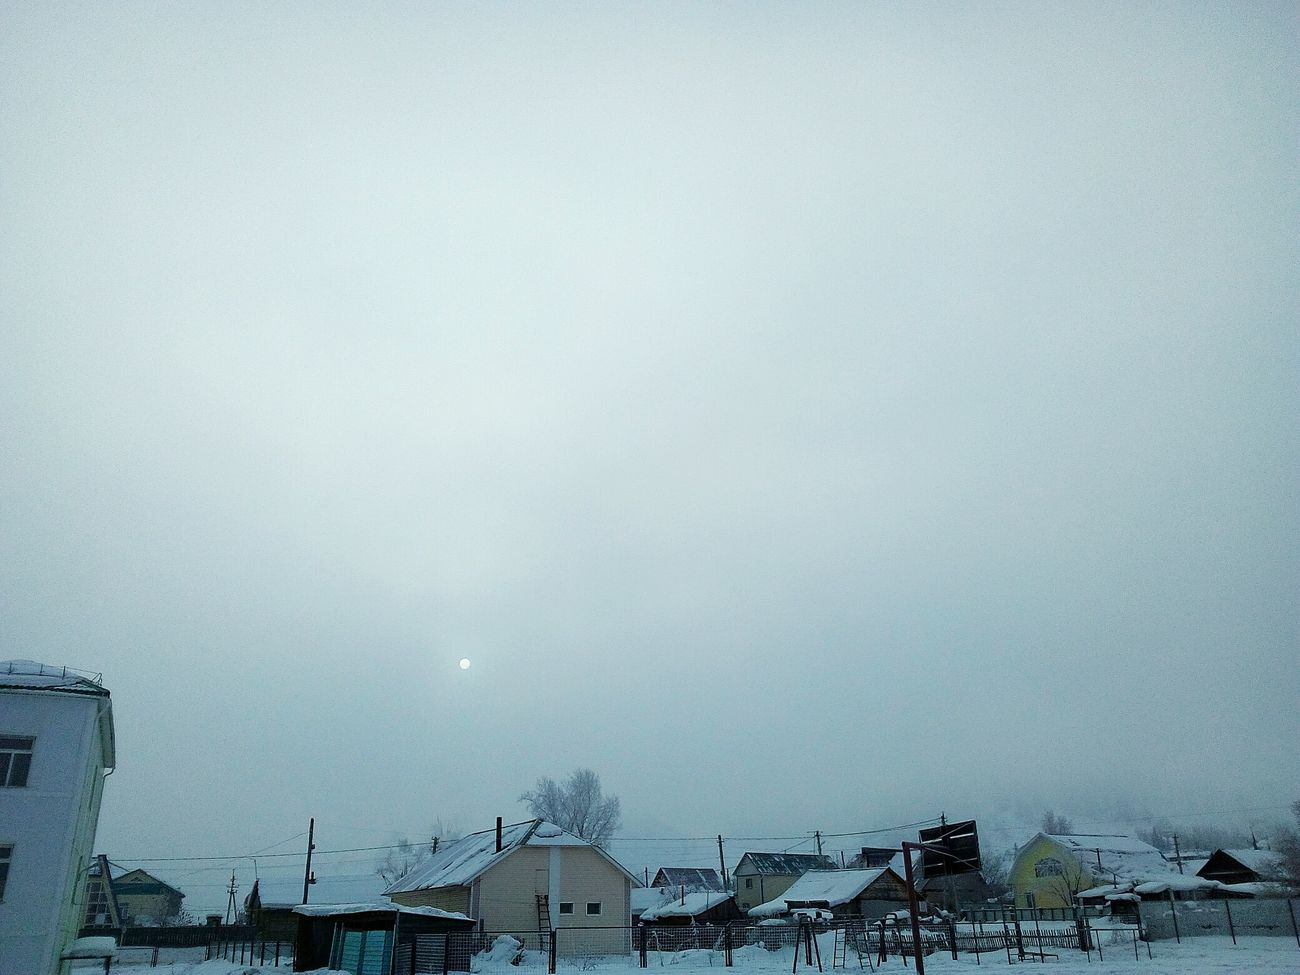 Snow Snow ❄ Snowing ❄ Snowing Snowing Day Winter Sun Moon Beautiful Beautiful Day World Nice Built Structure Building Exterior Sky Architecture Fog No People Outdoors Nature Day Cityscape First Eyeem Photo